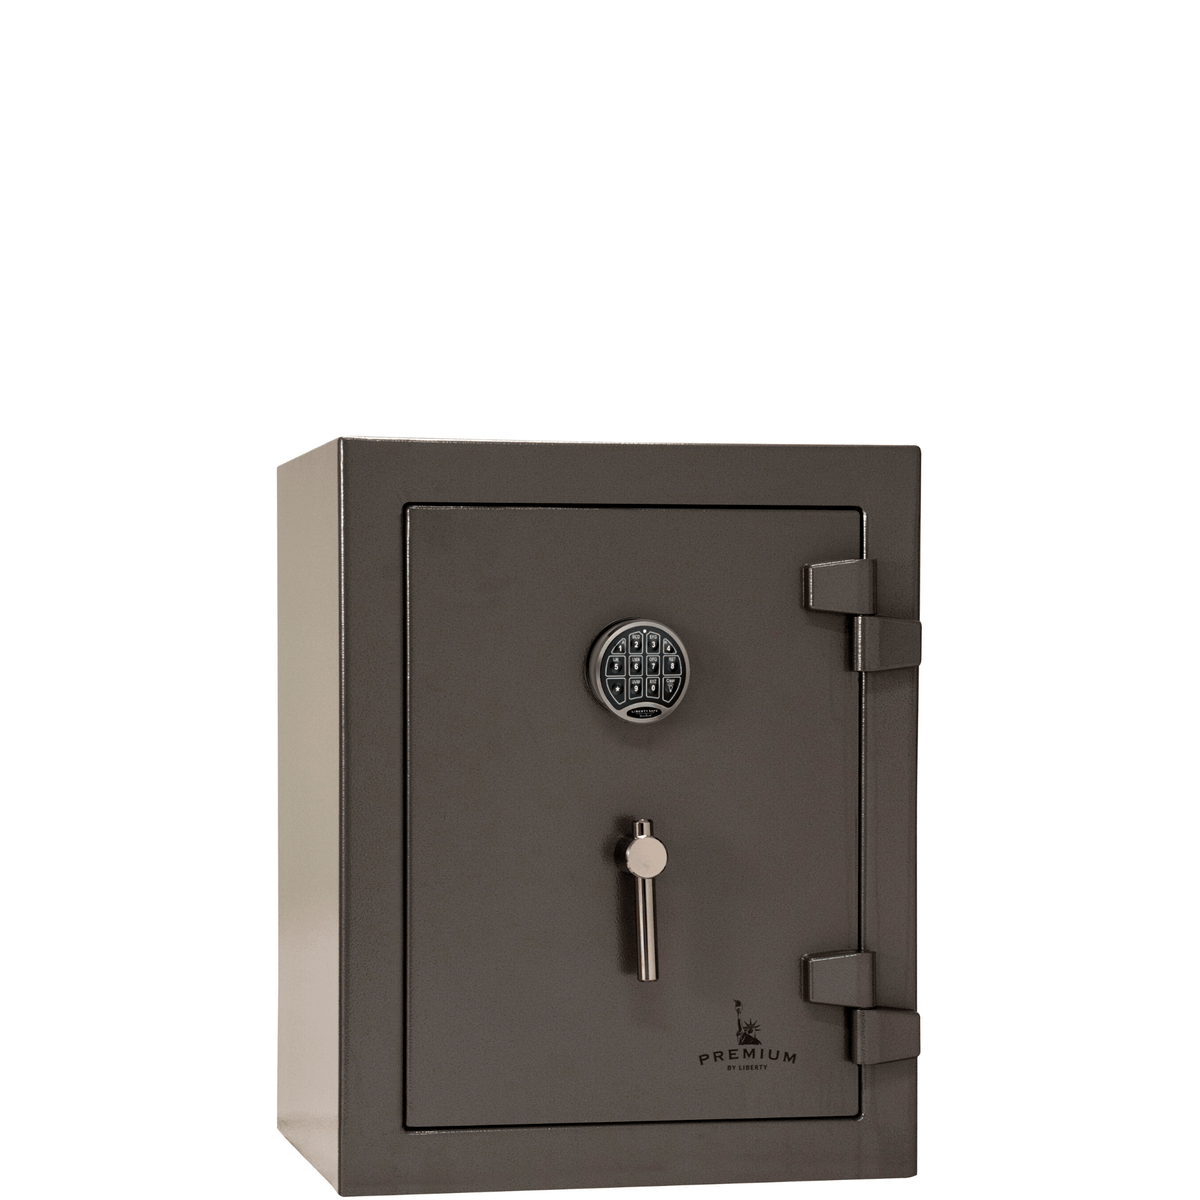 "Premium Home | 08 | 90 Minute Fire Protection | Gray | Electronic Lock | Dimensions: 30""(H) x 24""(W) x 22.5""(D)"